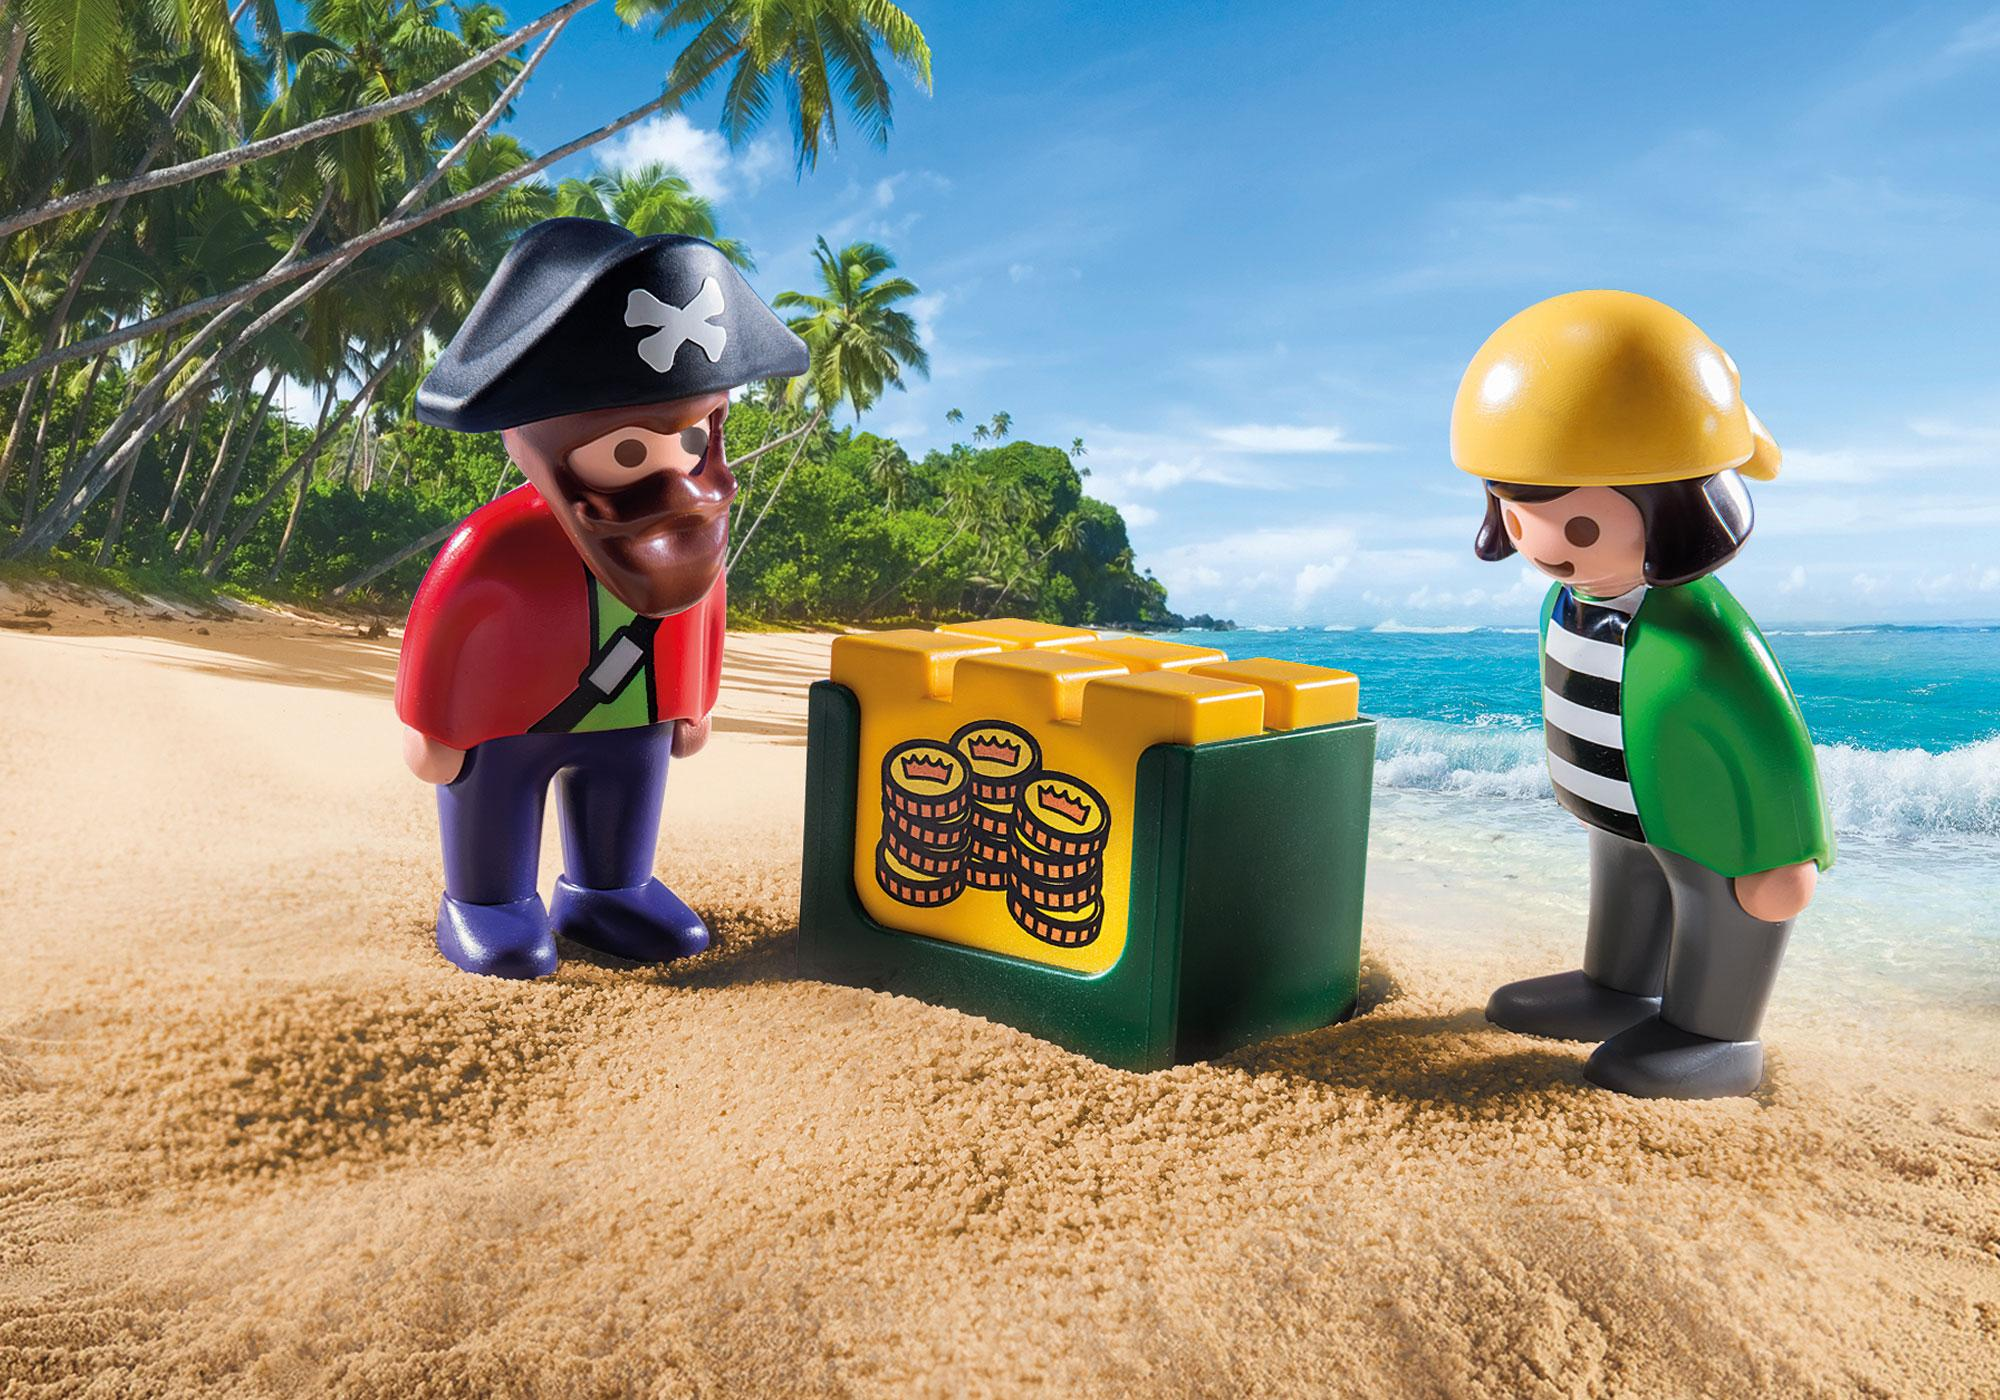 http://media.playmobil.com/i/playmobil/9118_product_extra1